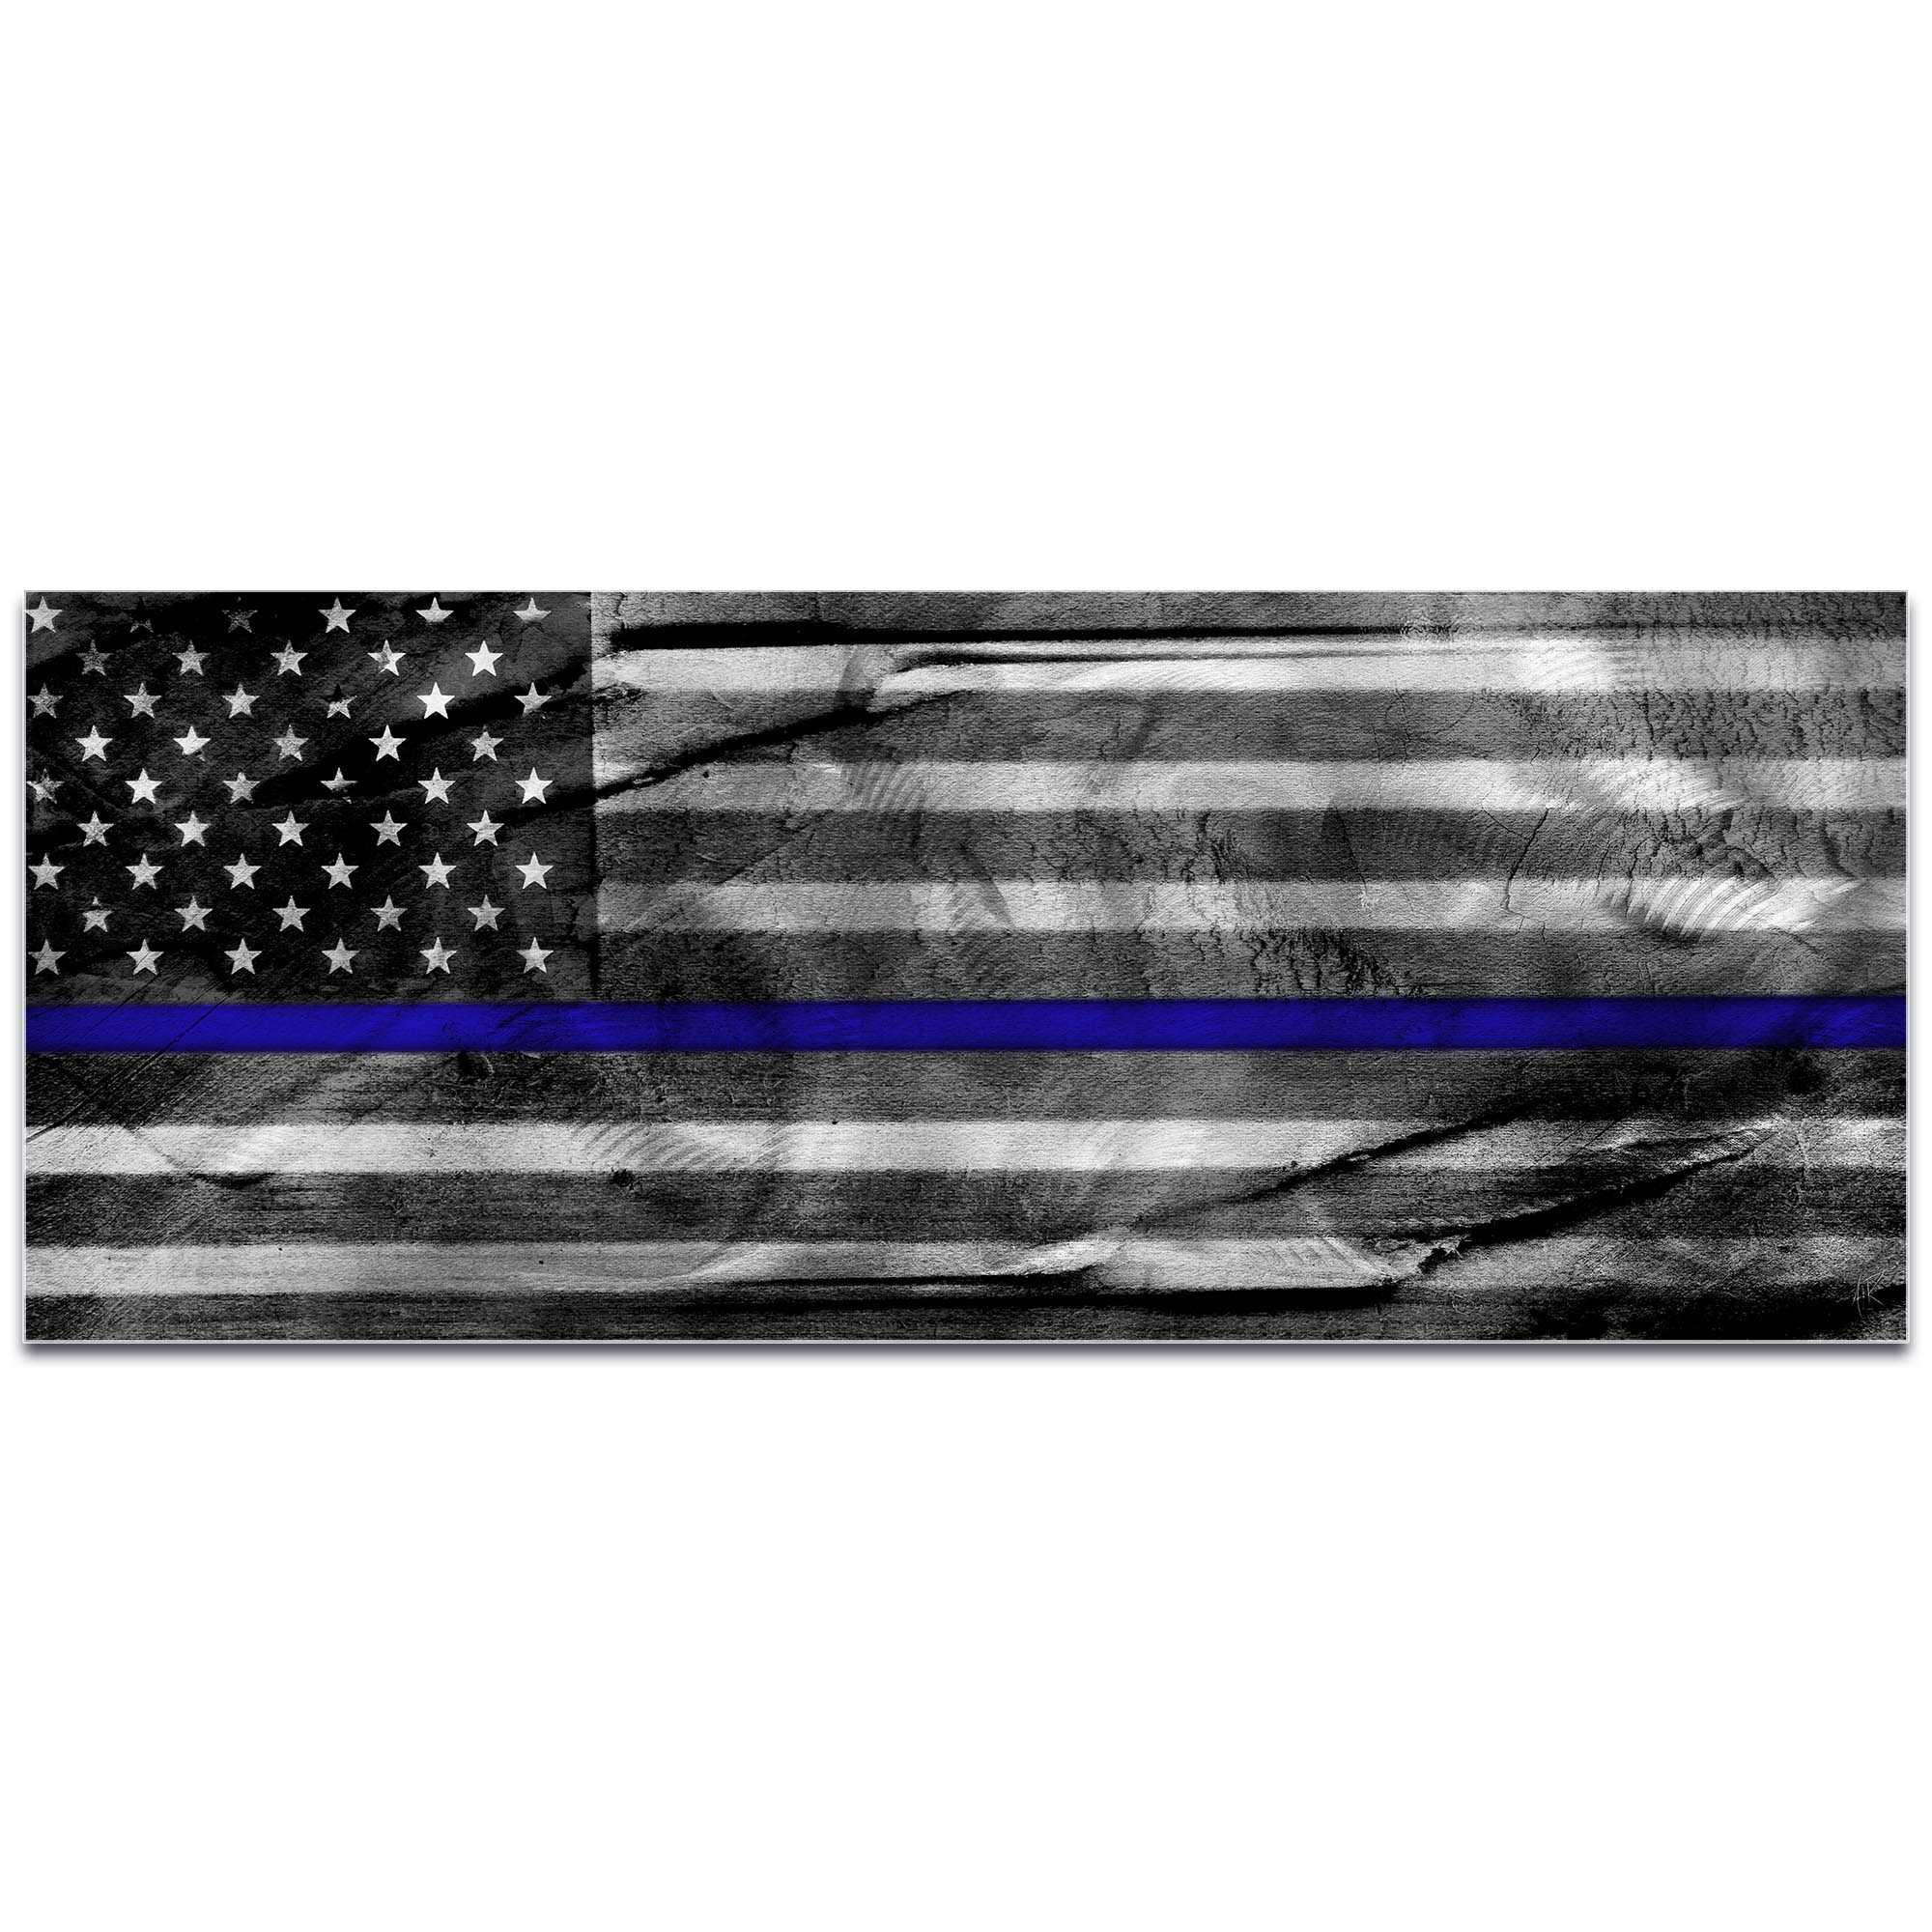 Police Officer Flag 'American Glory Police Tribute' - Policemen Art on Metal or Acrylic - Image 2